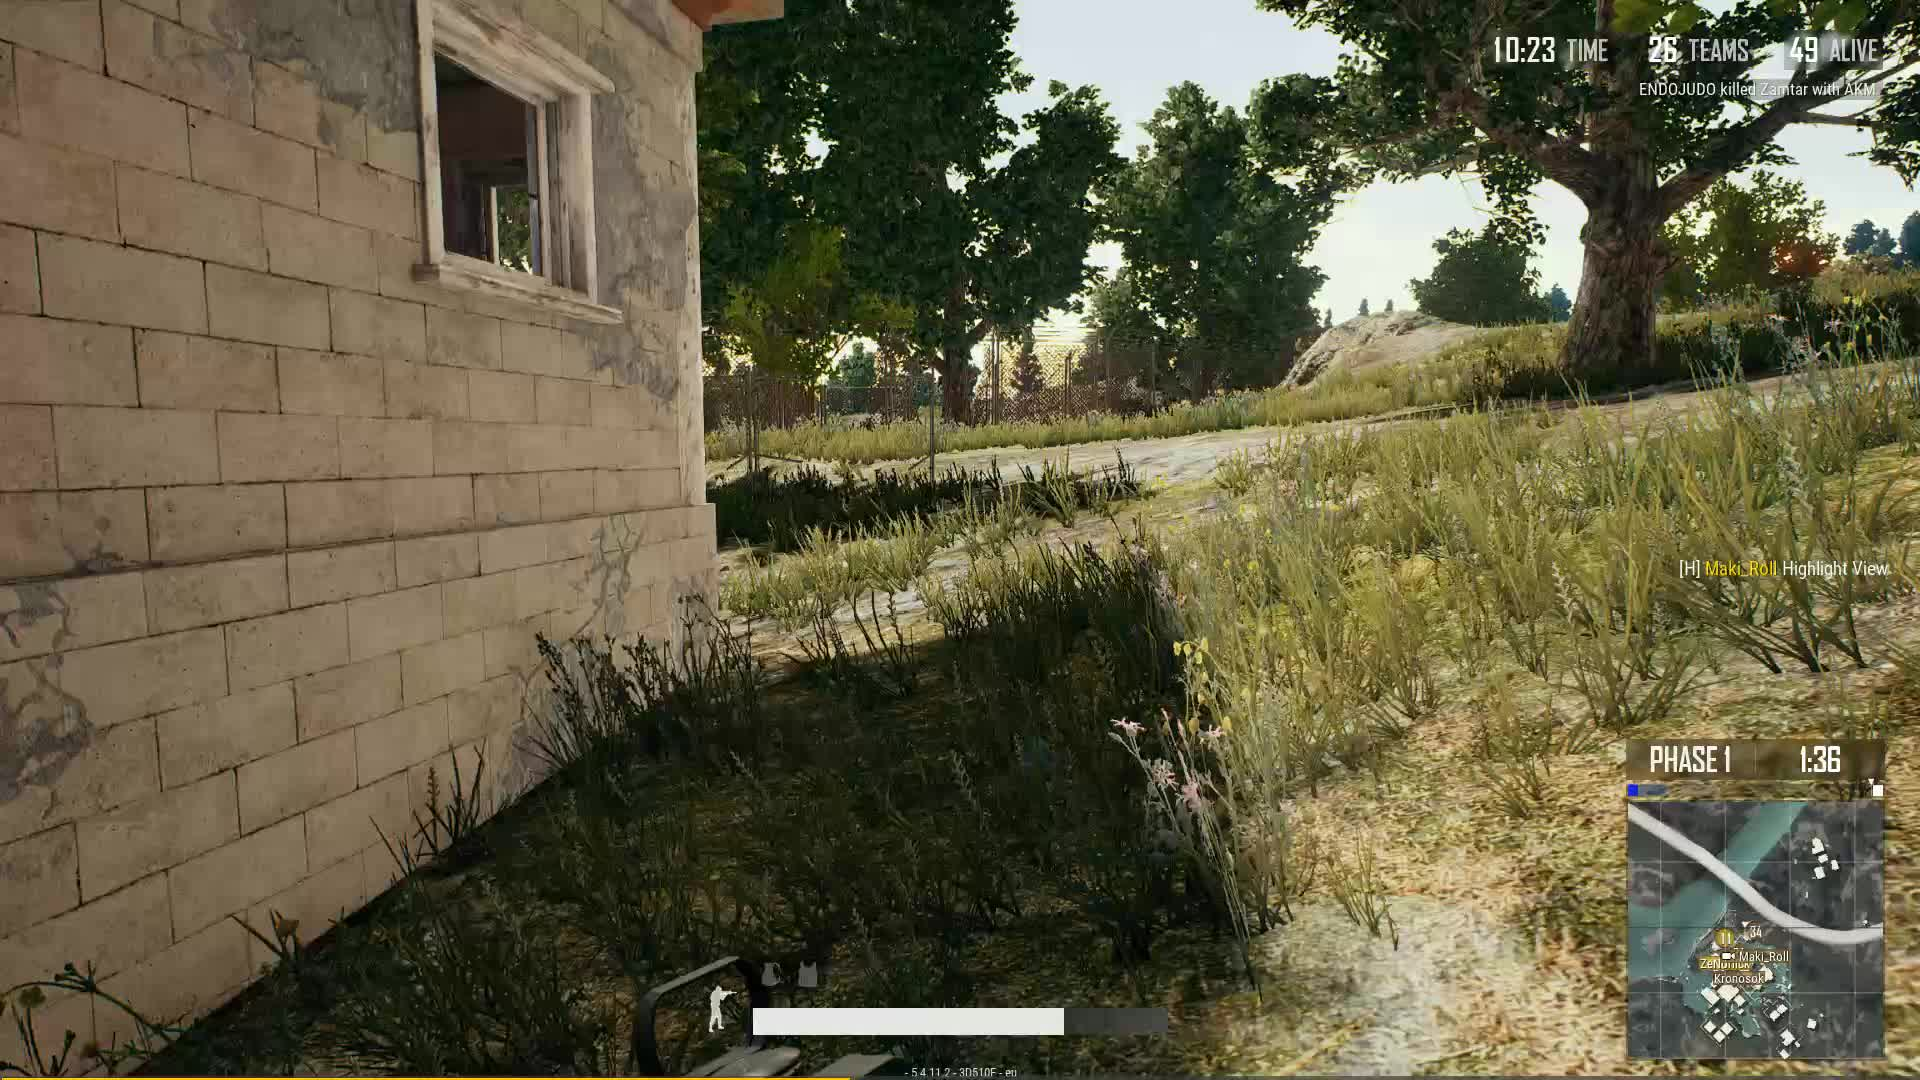 Gaming, Gif Your Game, GifYourGame, Kill, Maki_Roll, PUBG, PUBattlegrounds, Maki_Roll got a double kill GIFs